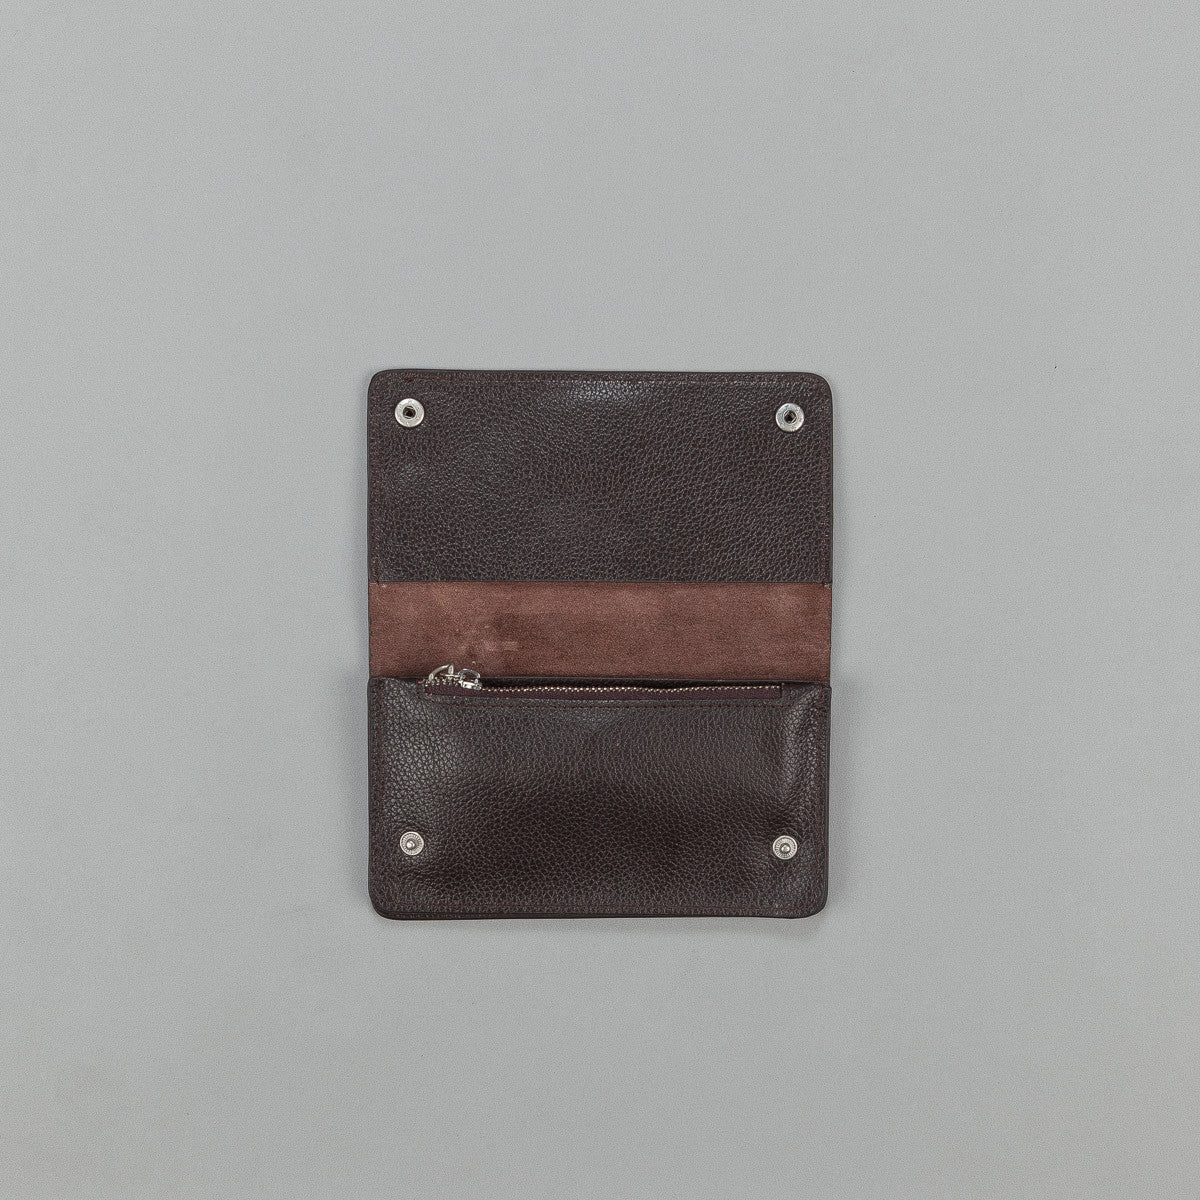 Dickies Balboa Island Wallet - Brown